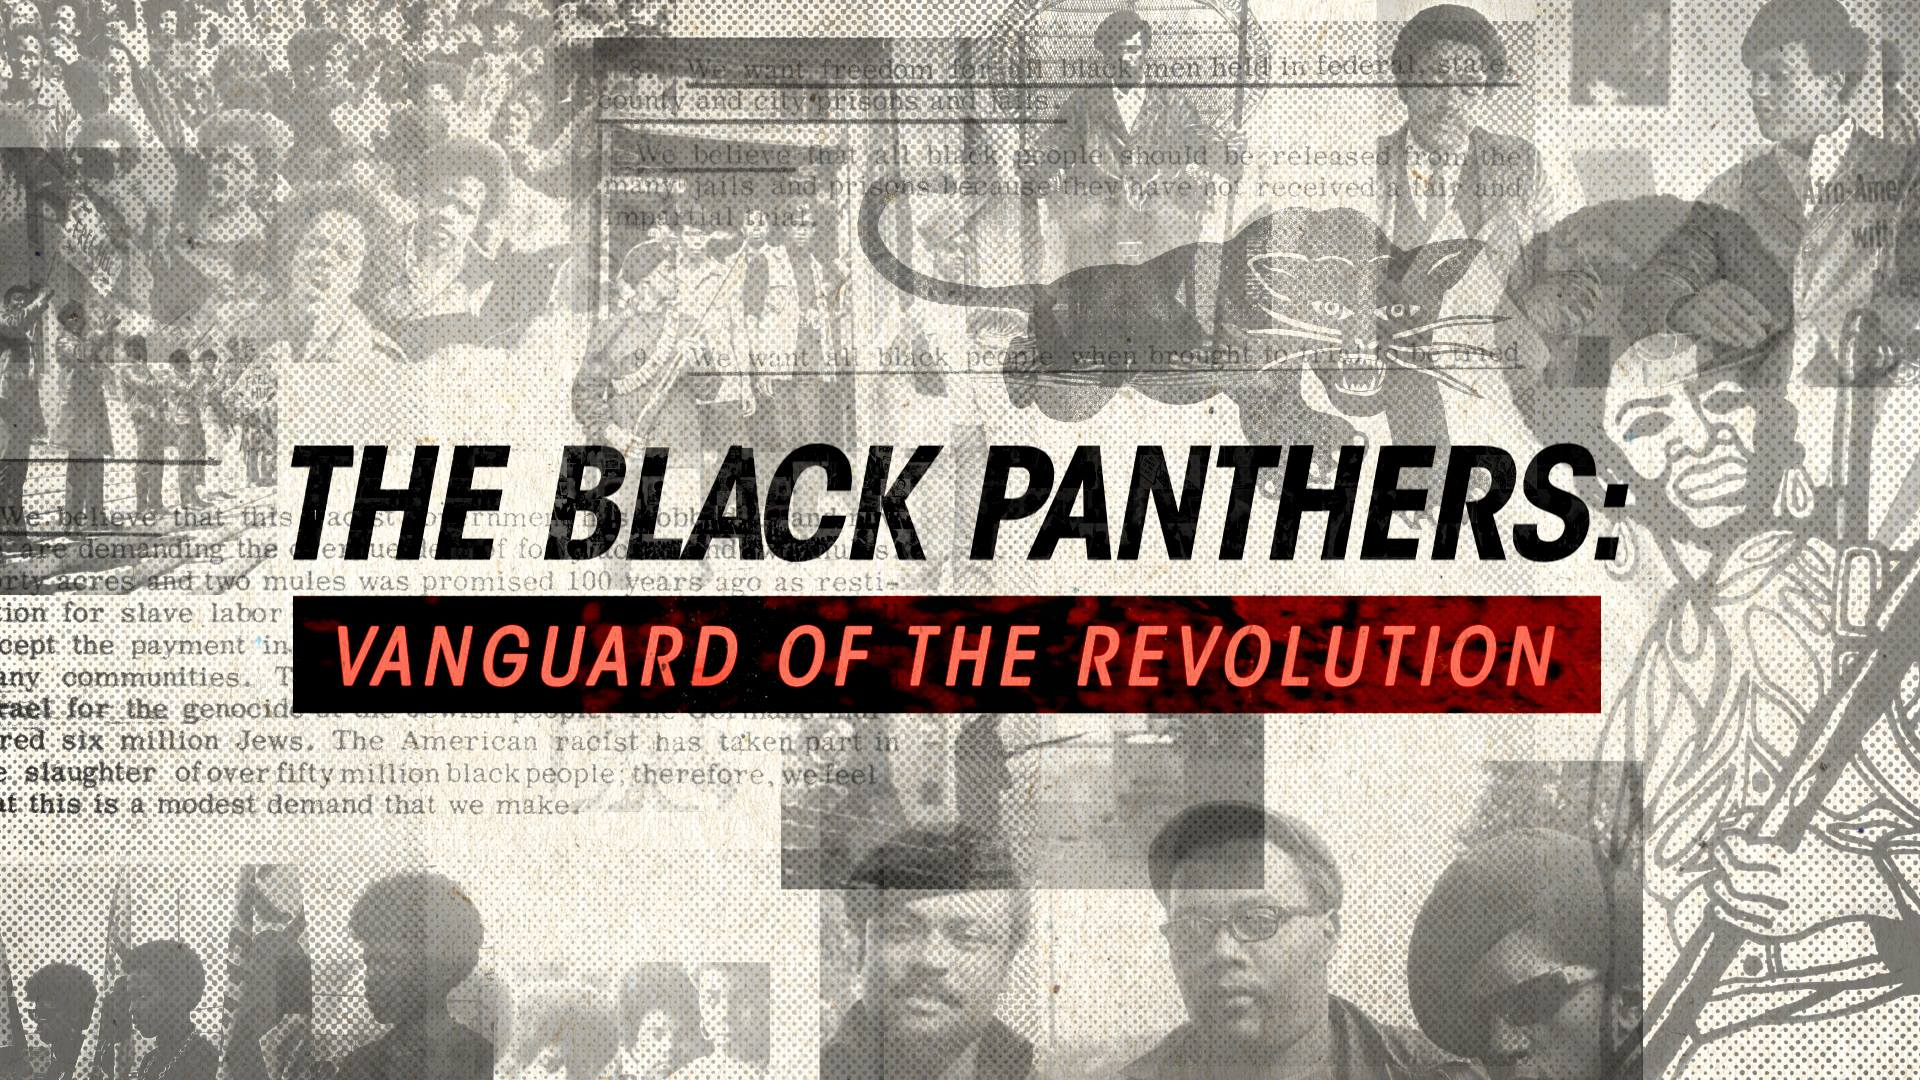 the-black-panthers-vanguard-of-the-revolution.jpg